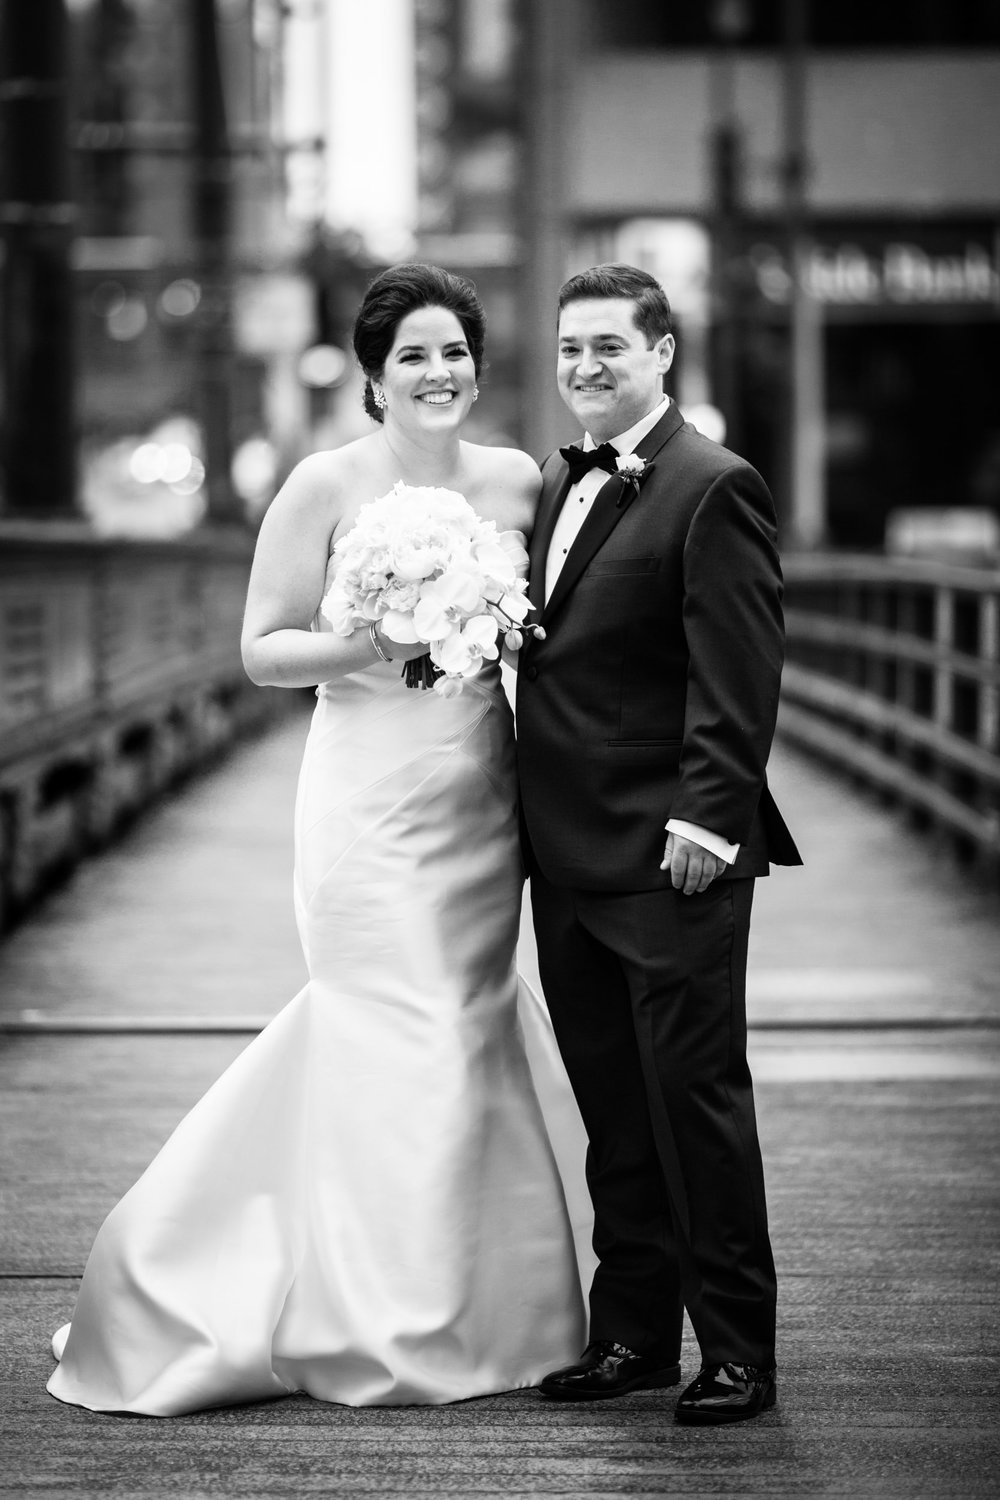 Black and white portrait of a bride and groom in Chicago